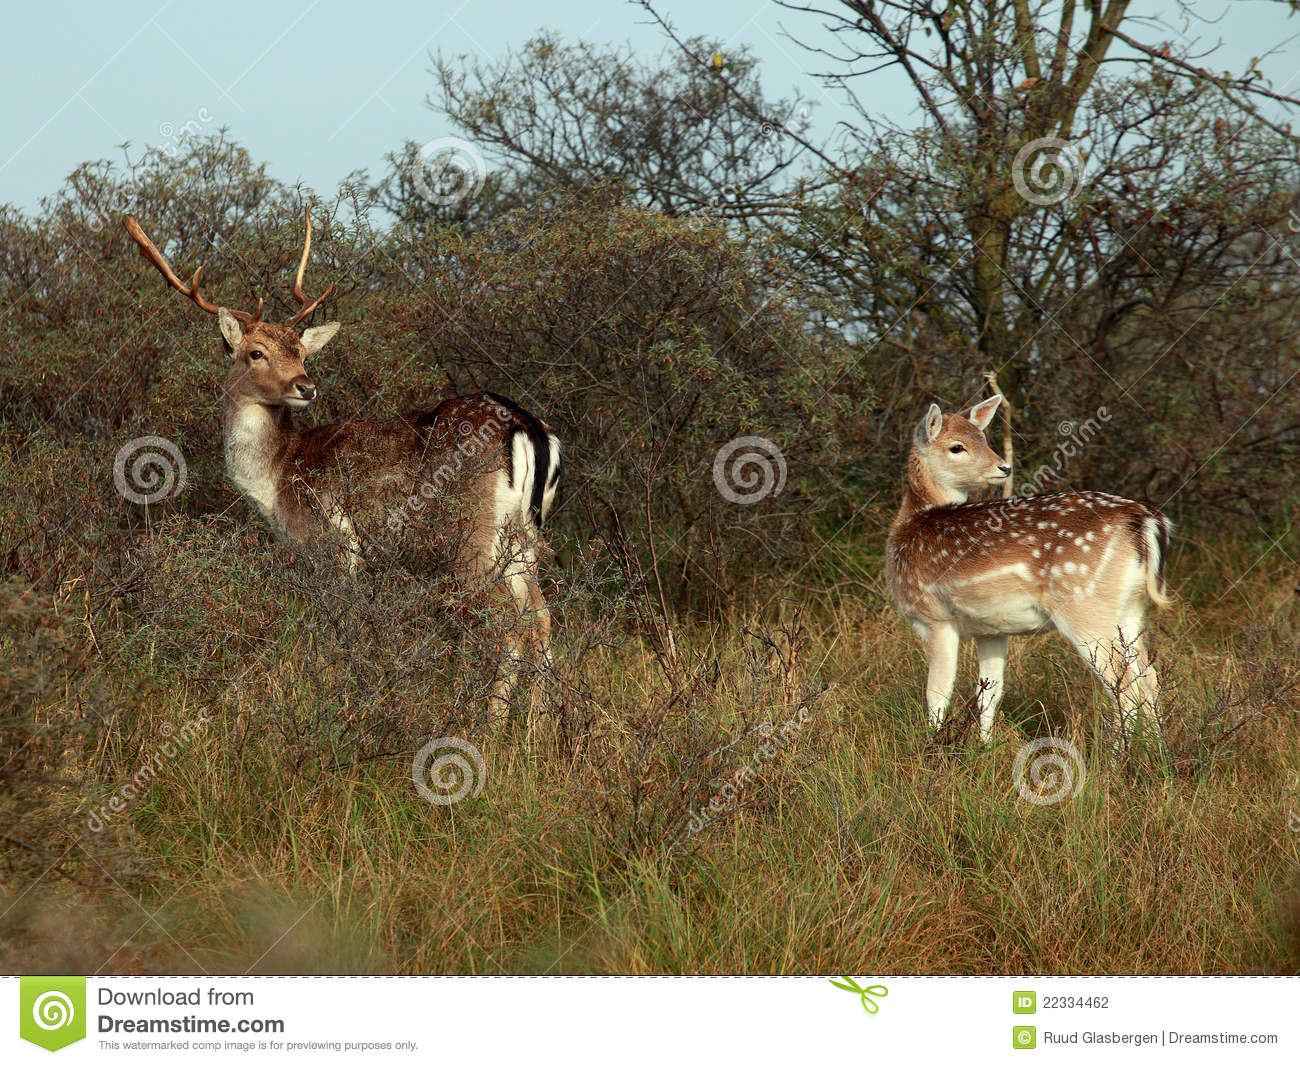 bambi in the woods stock photo. image of dama, fallow - 22334462